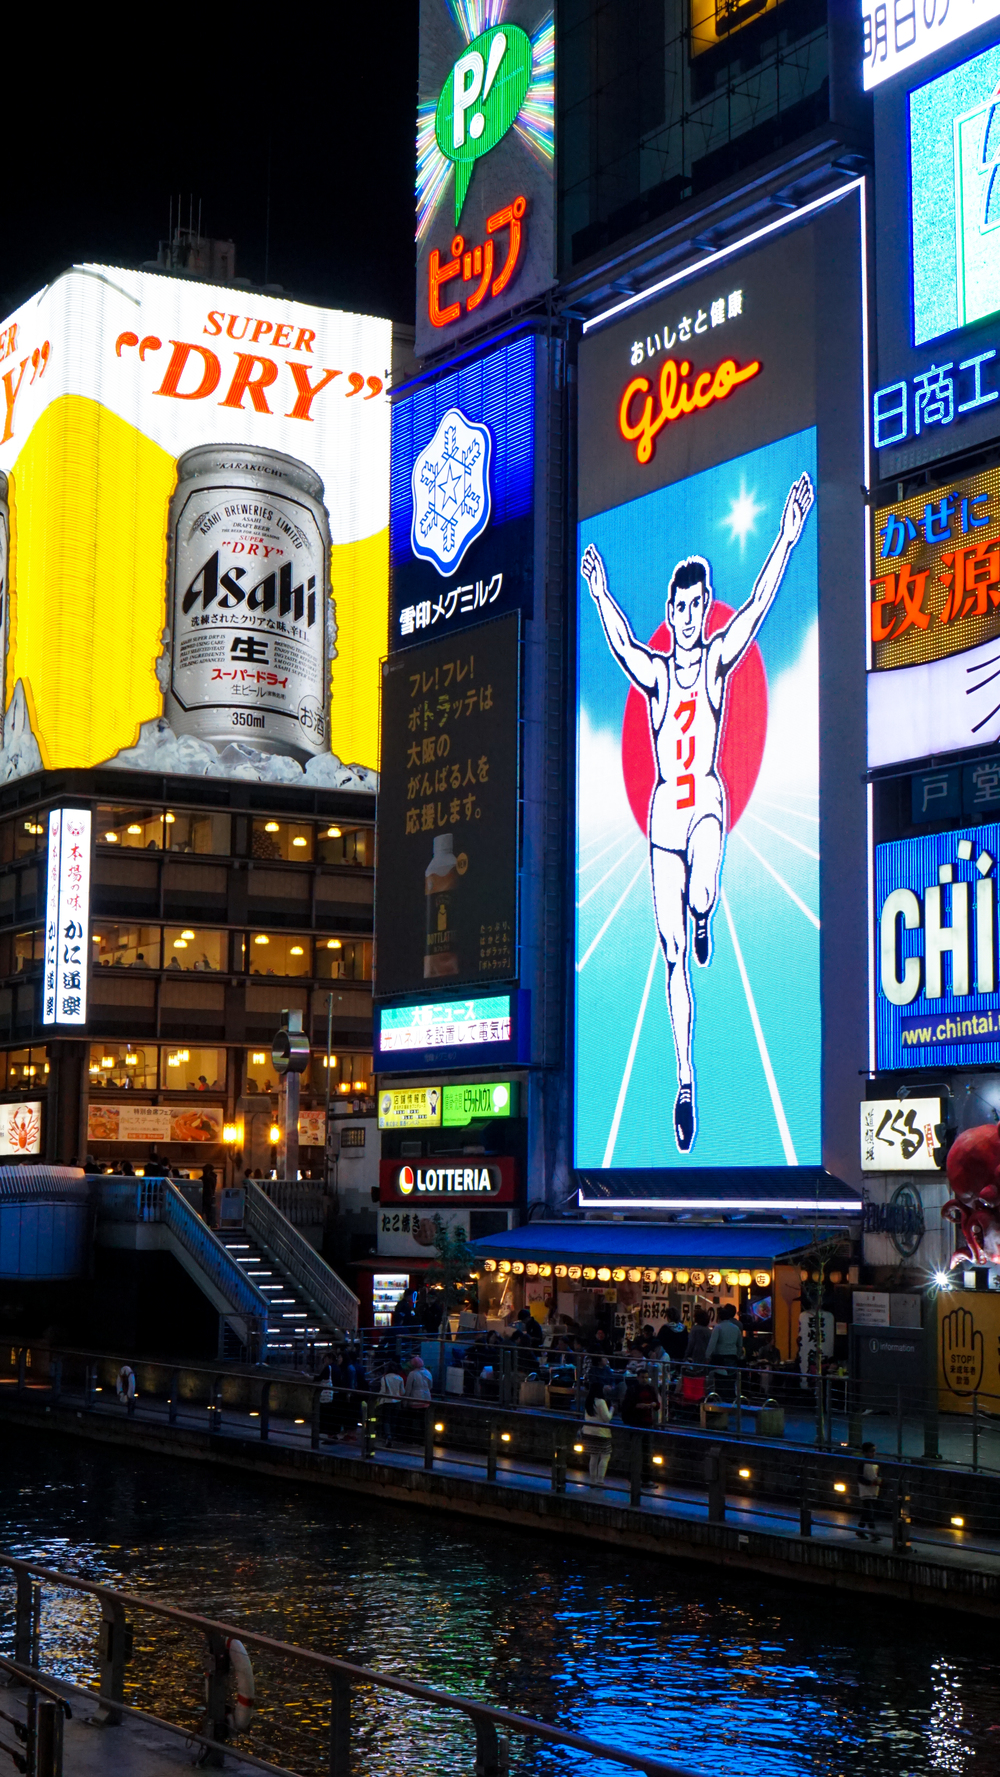 Dotonbori, a famous tourist destination in Osaka, as marked by the evident Glico Running Man sign and unmistakable energy and delicious smell of fried food.